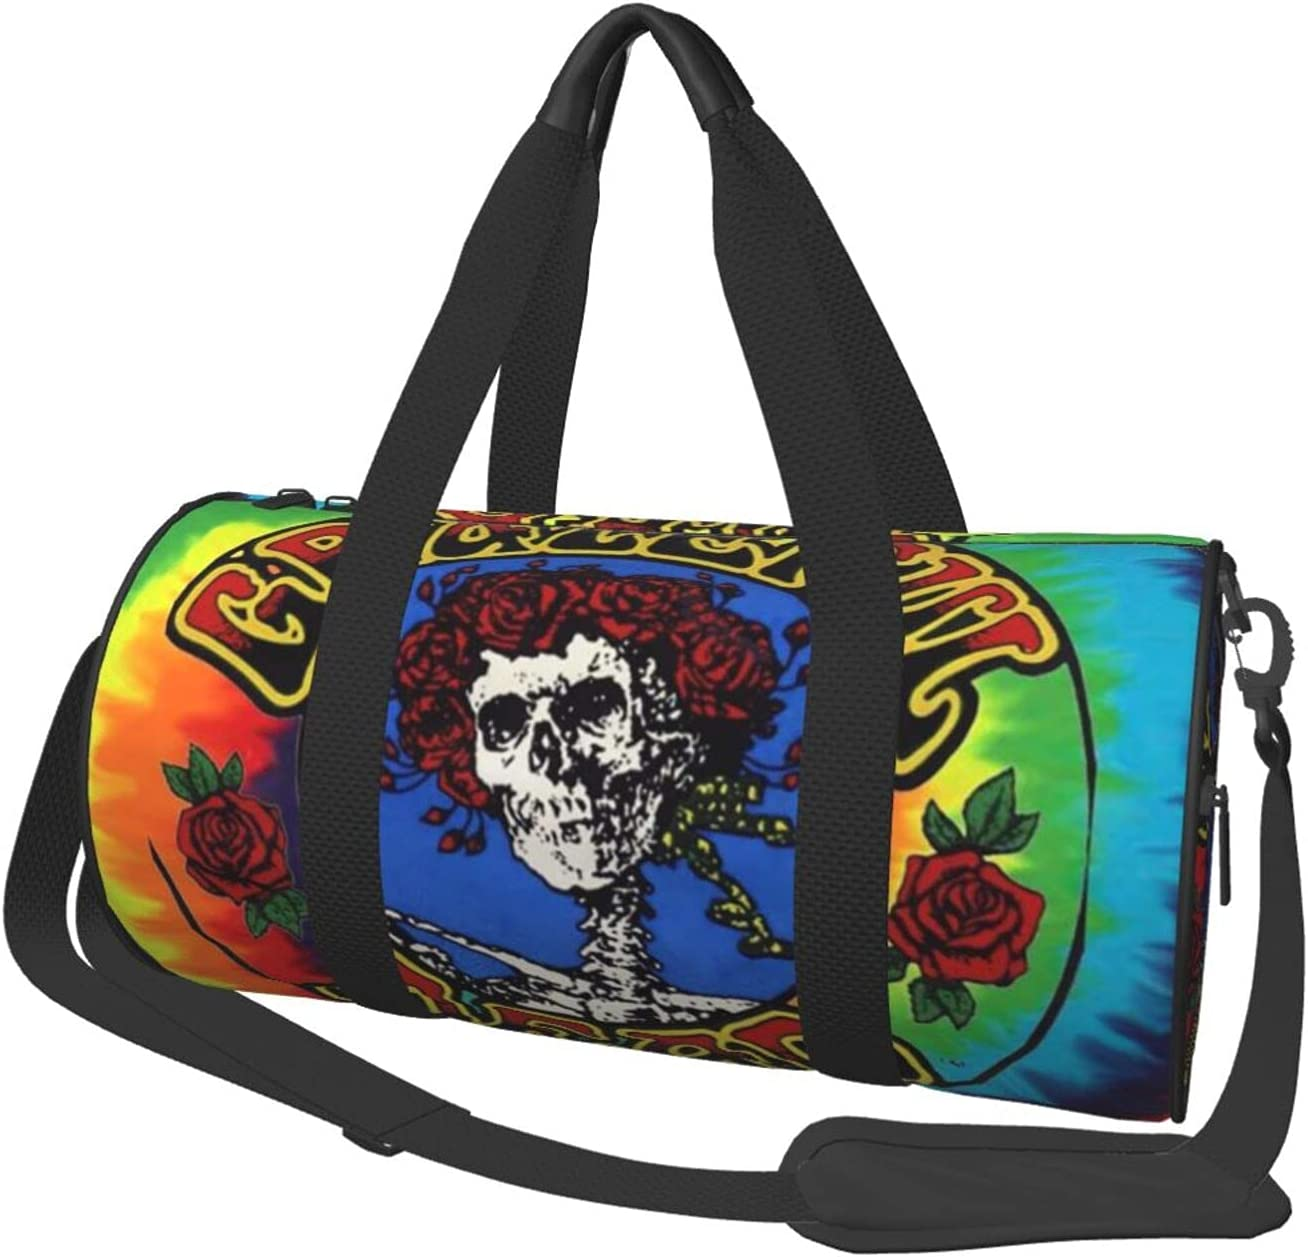 Grate-ful Dead Dancing price Bears Spiral Gym Lightw Duffel Bag We OFFer at cheap prices Barrel